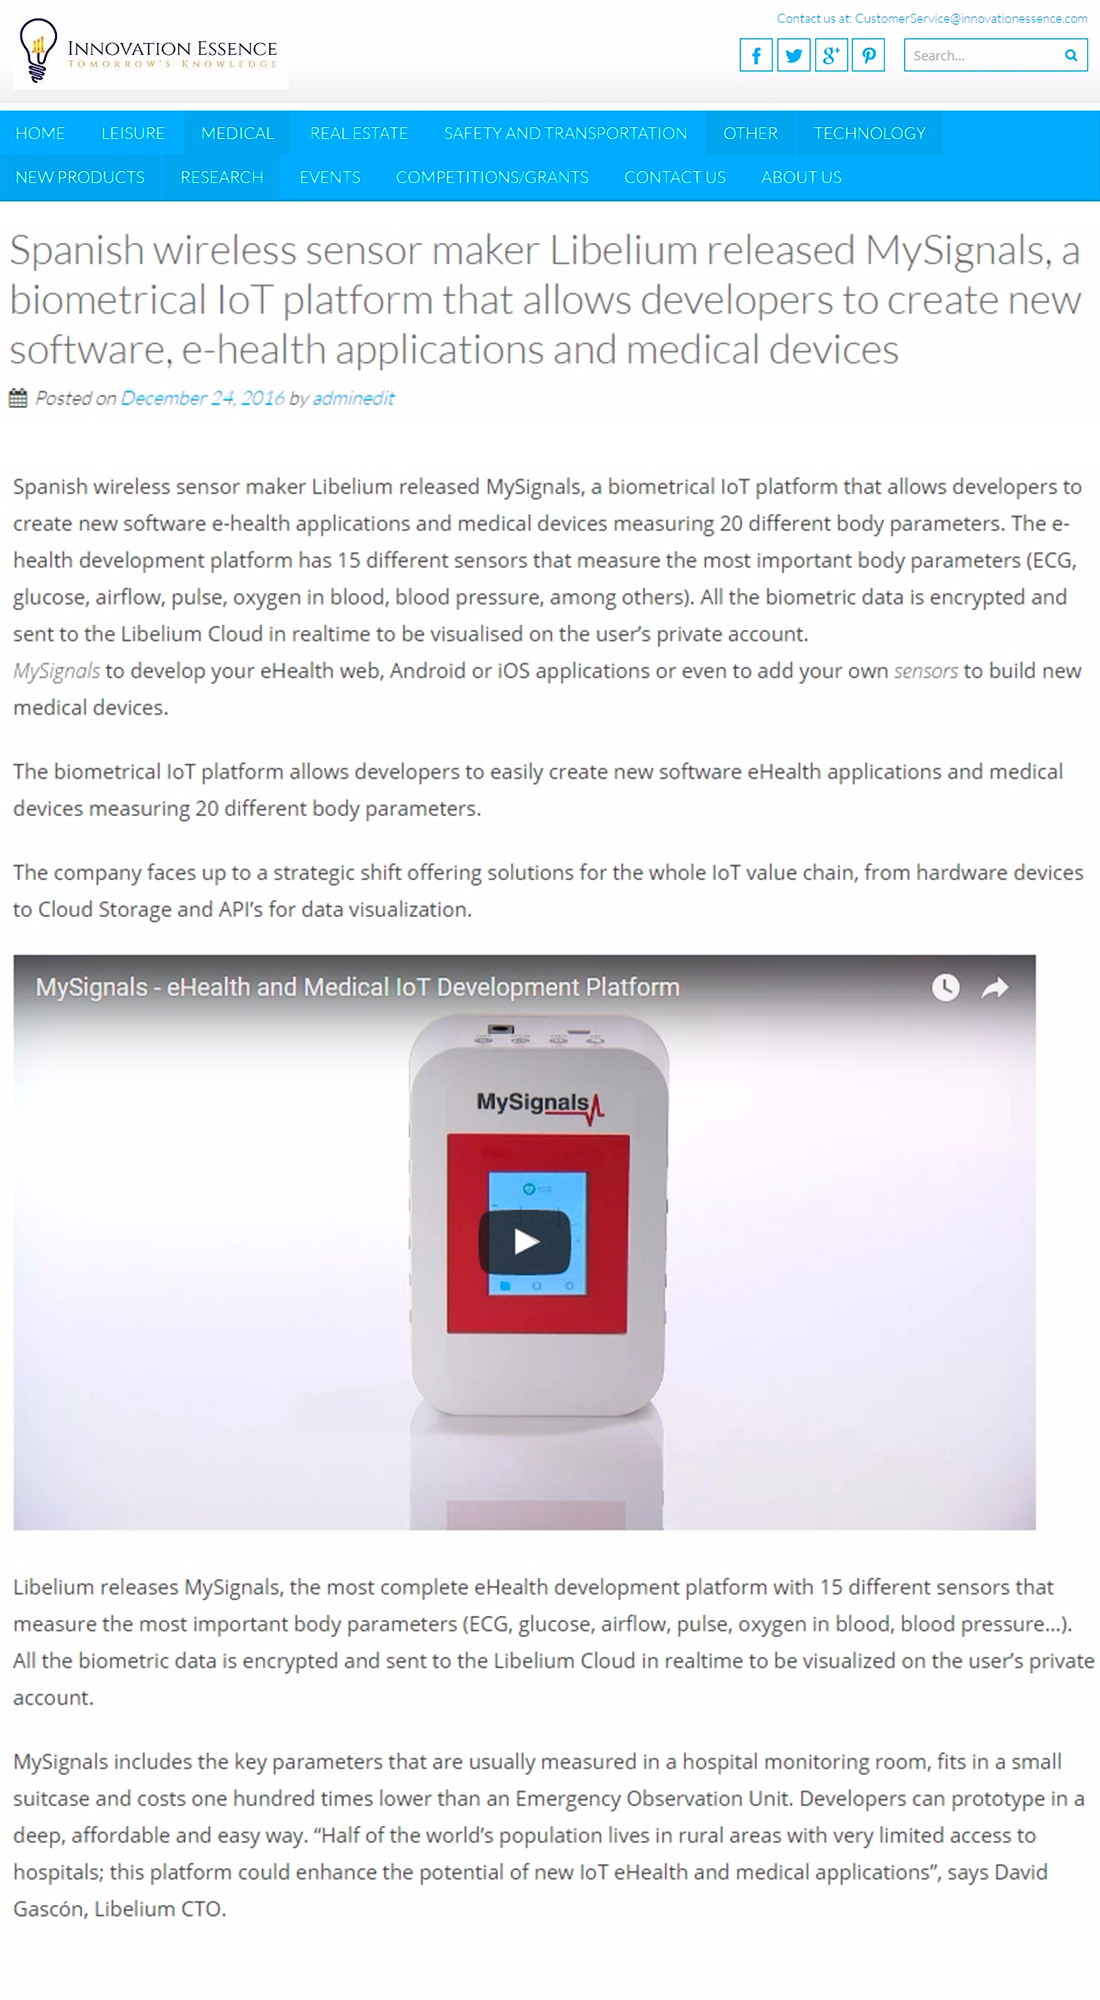 Innovation Essence – Spanish wireless sensor maker Libelium released MySignals